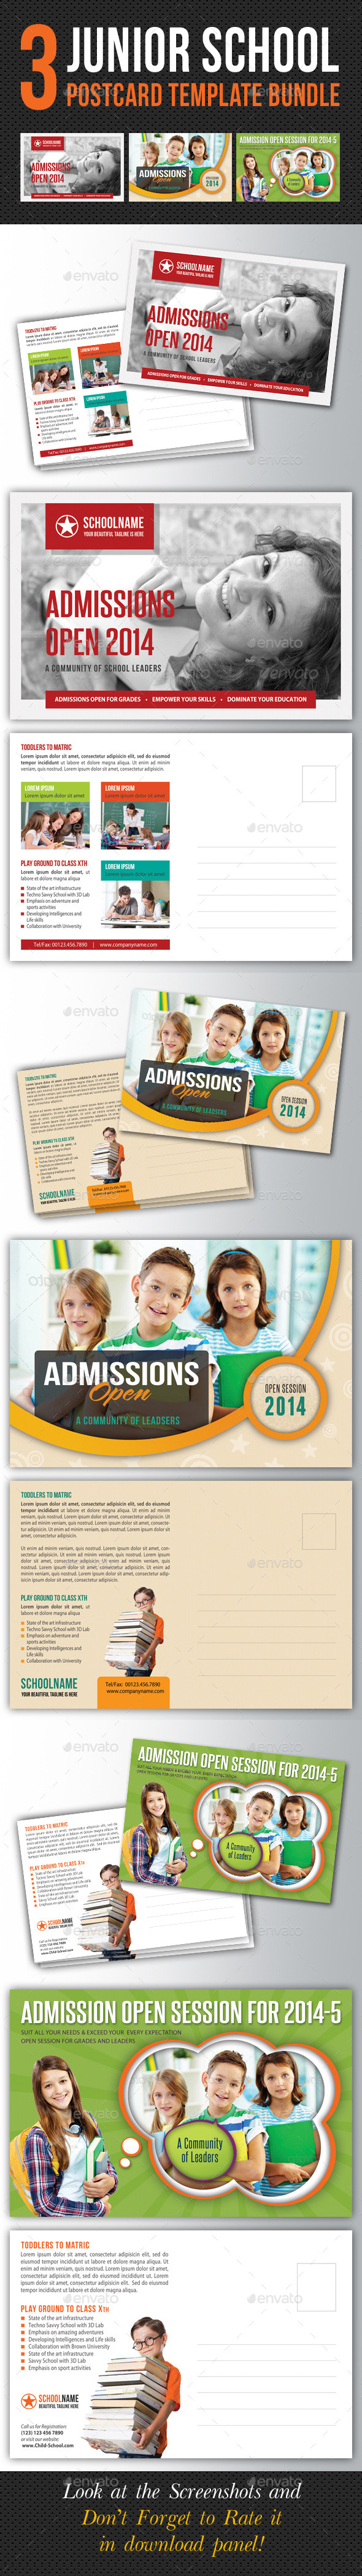 3 in 1 Junior School Promotion Postcard Bundle 01 - Cards & Invites Print Templates